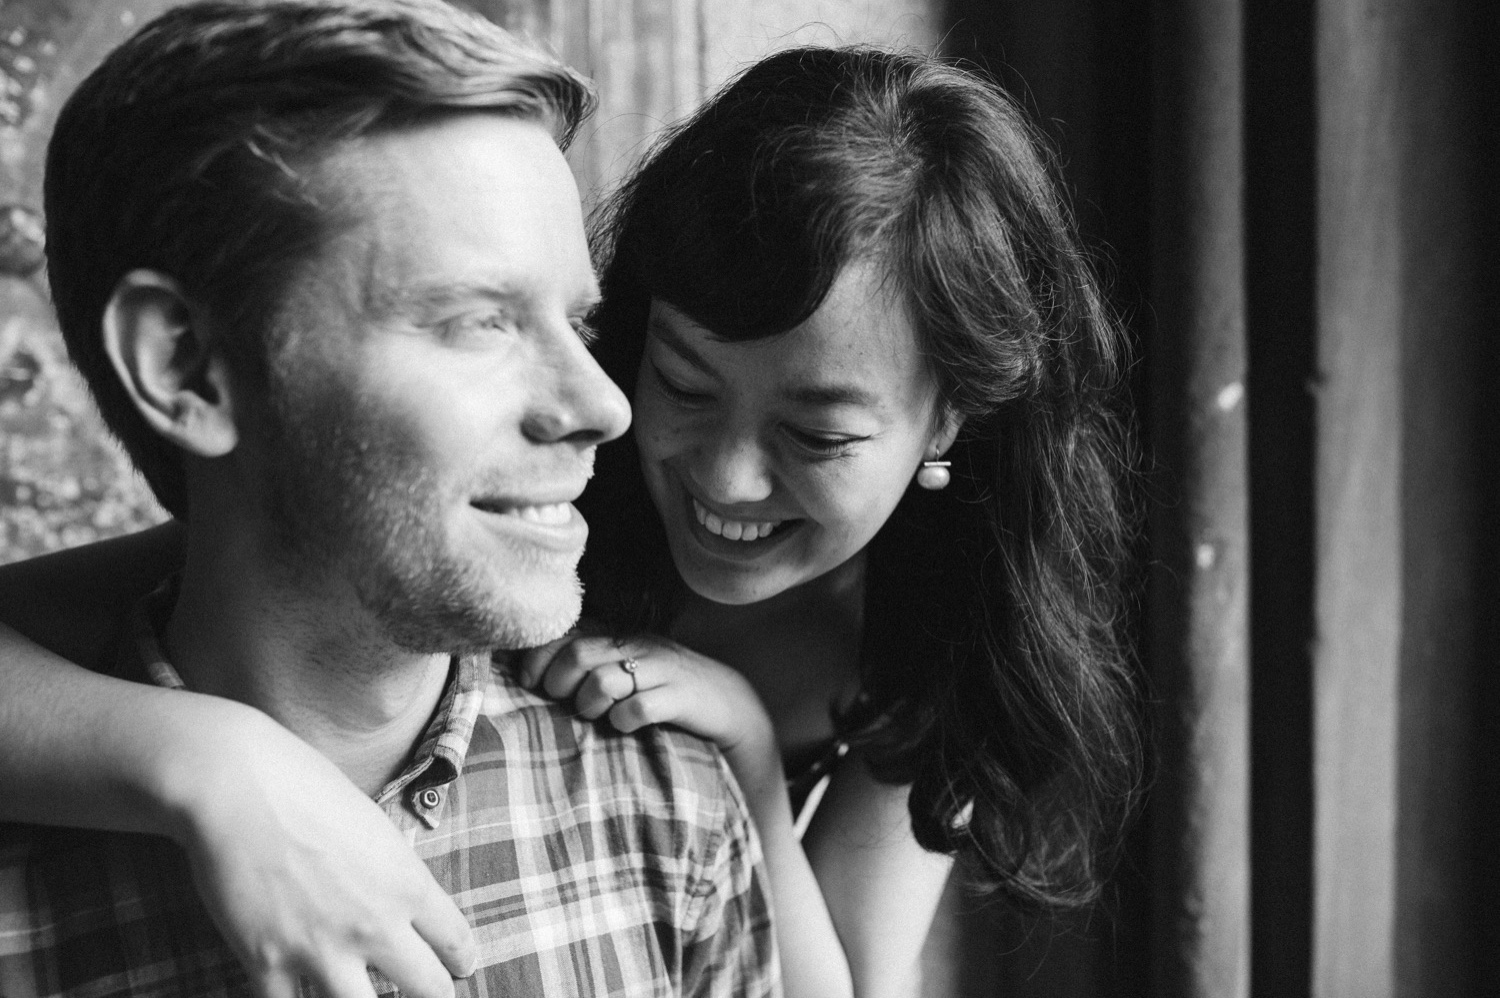 black and white photo of engaged couple. She is wrapping her arms around his shoulders whispering things in his ear